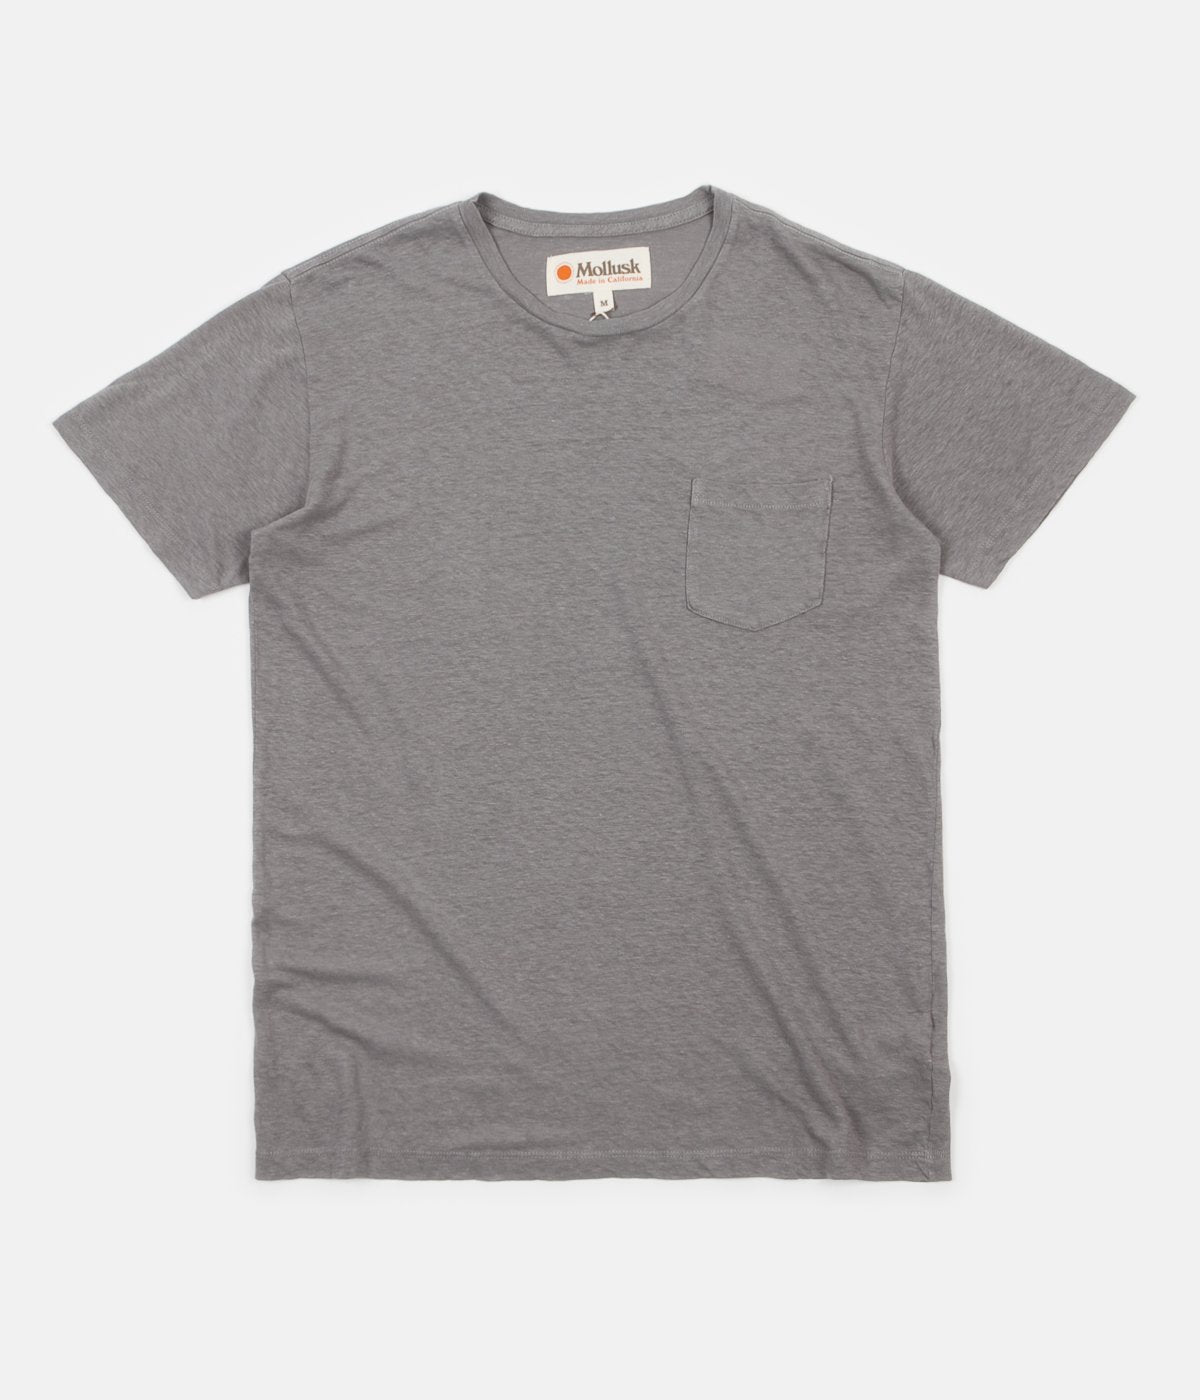 Mollusk Hemp Pocket T-Shirt - Cloud Grey